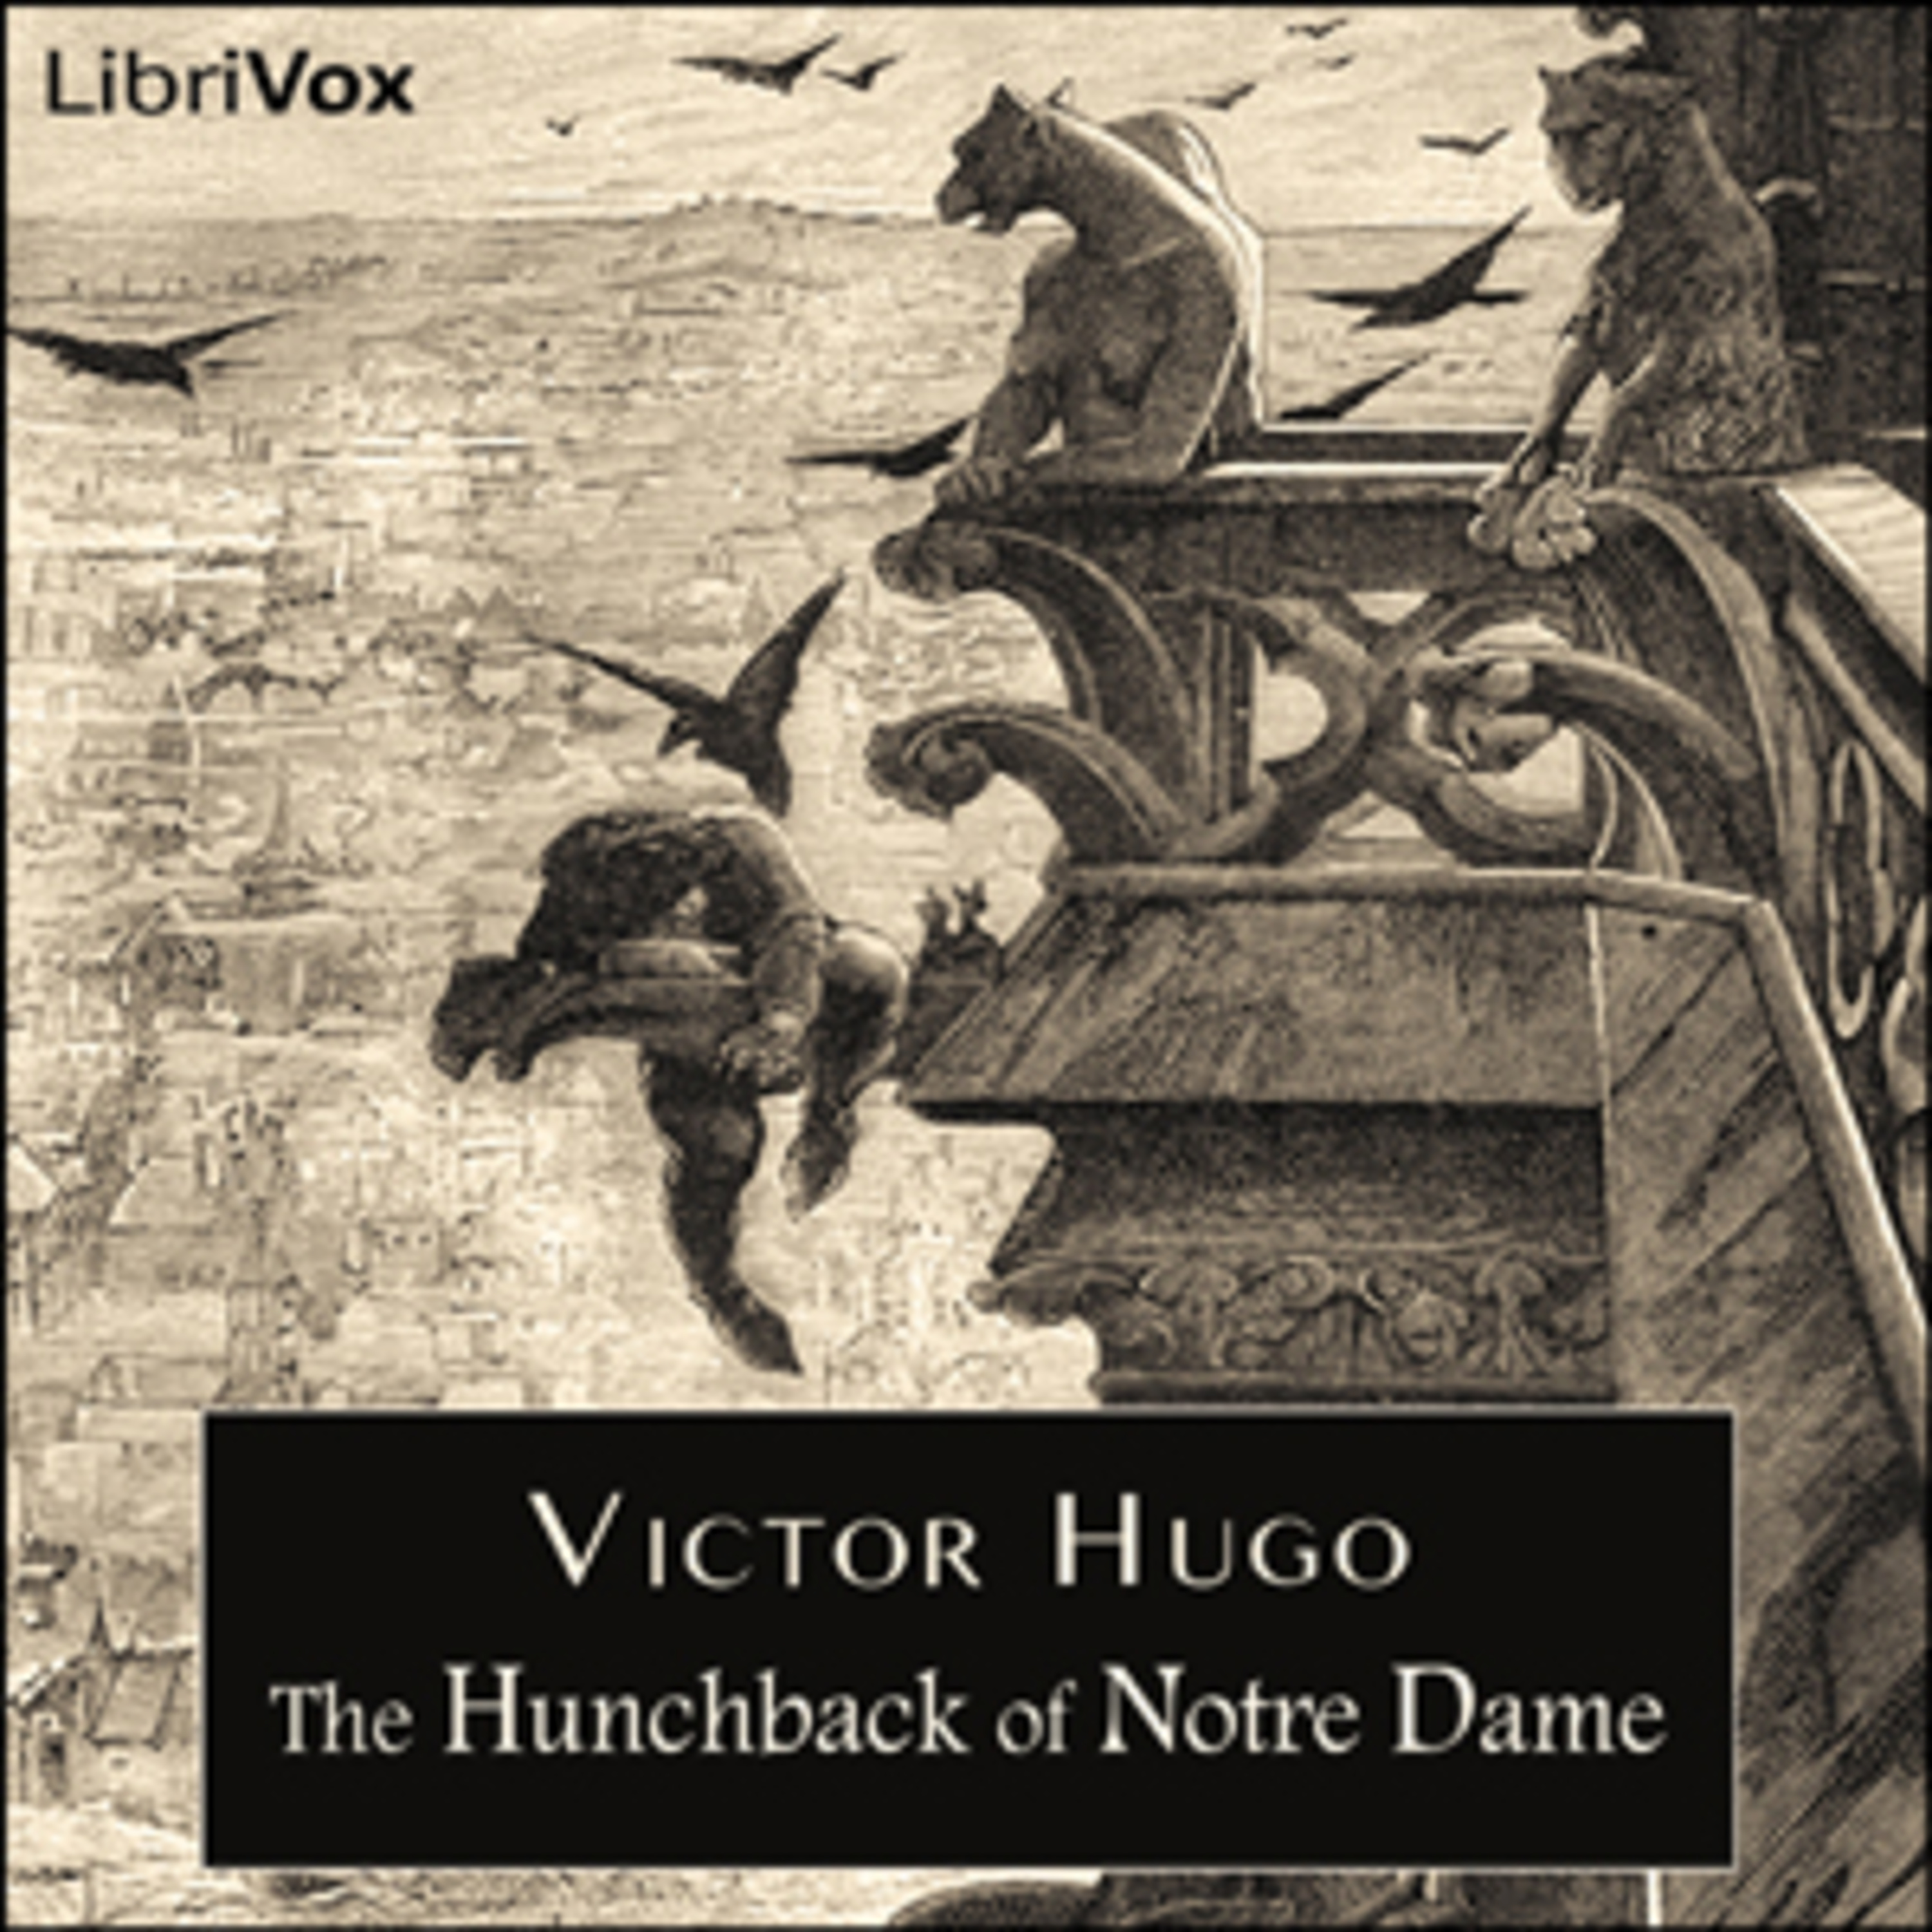 The Hunchback of Notre Dame - Victor Hugo - Book 2 - 1-3 - From Charybdis to Scylia - Place de Grave - Kisses for Blows